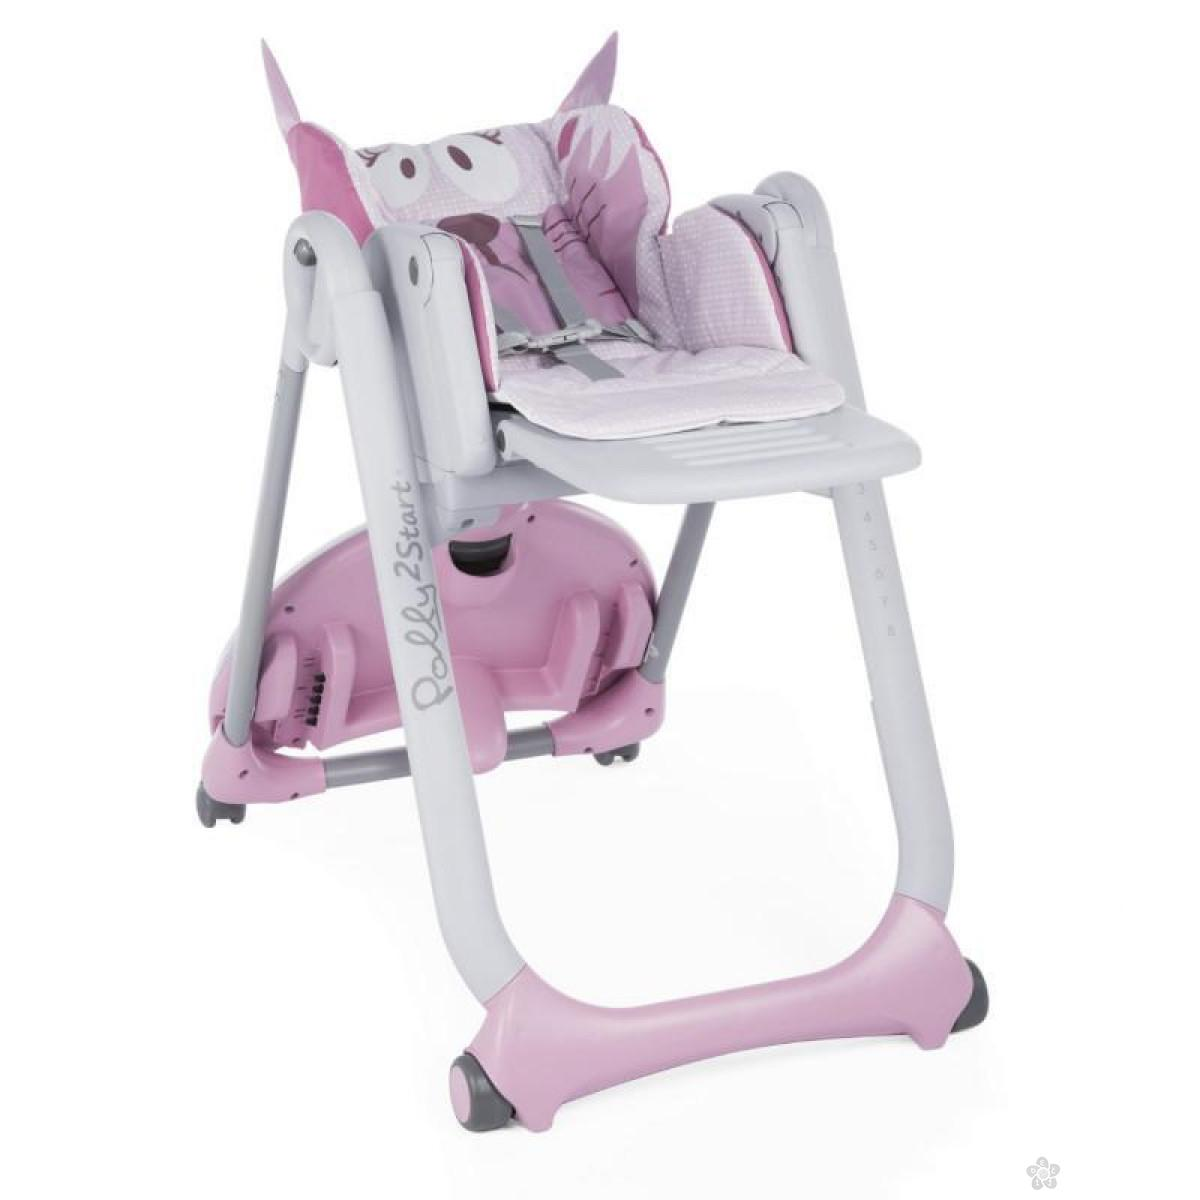 Chicco hranilica Polly 2 Start A026439-MissPink